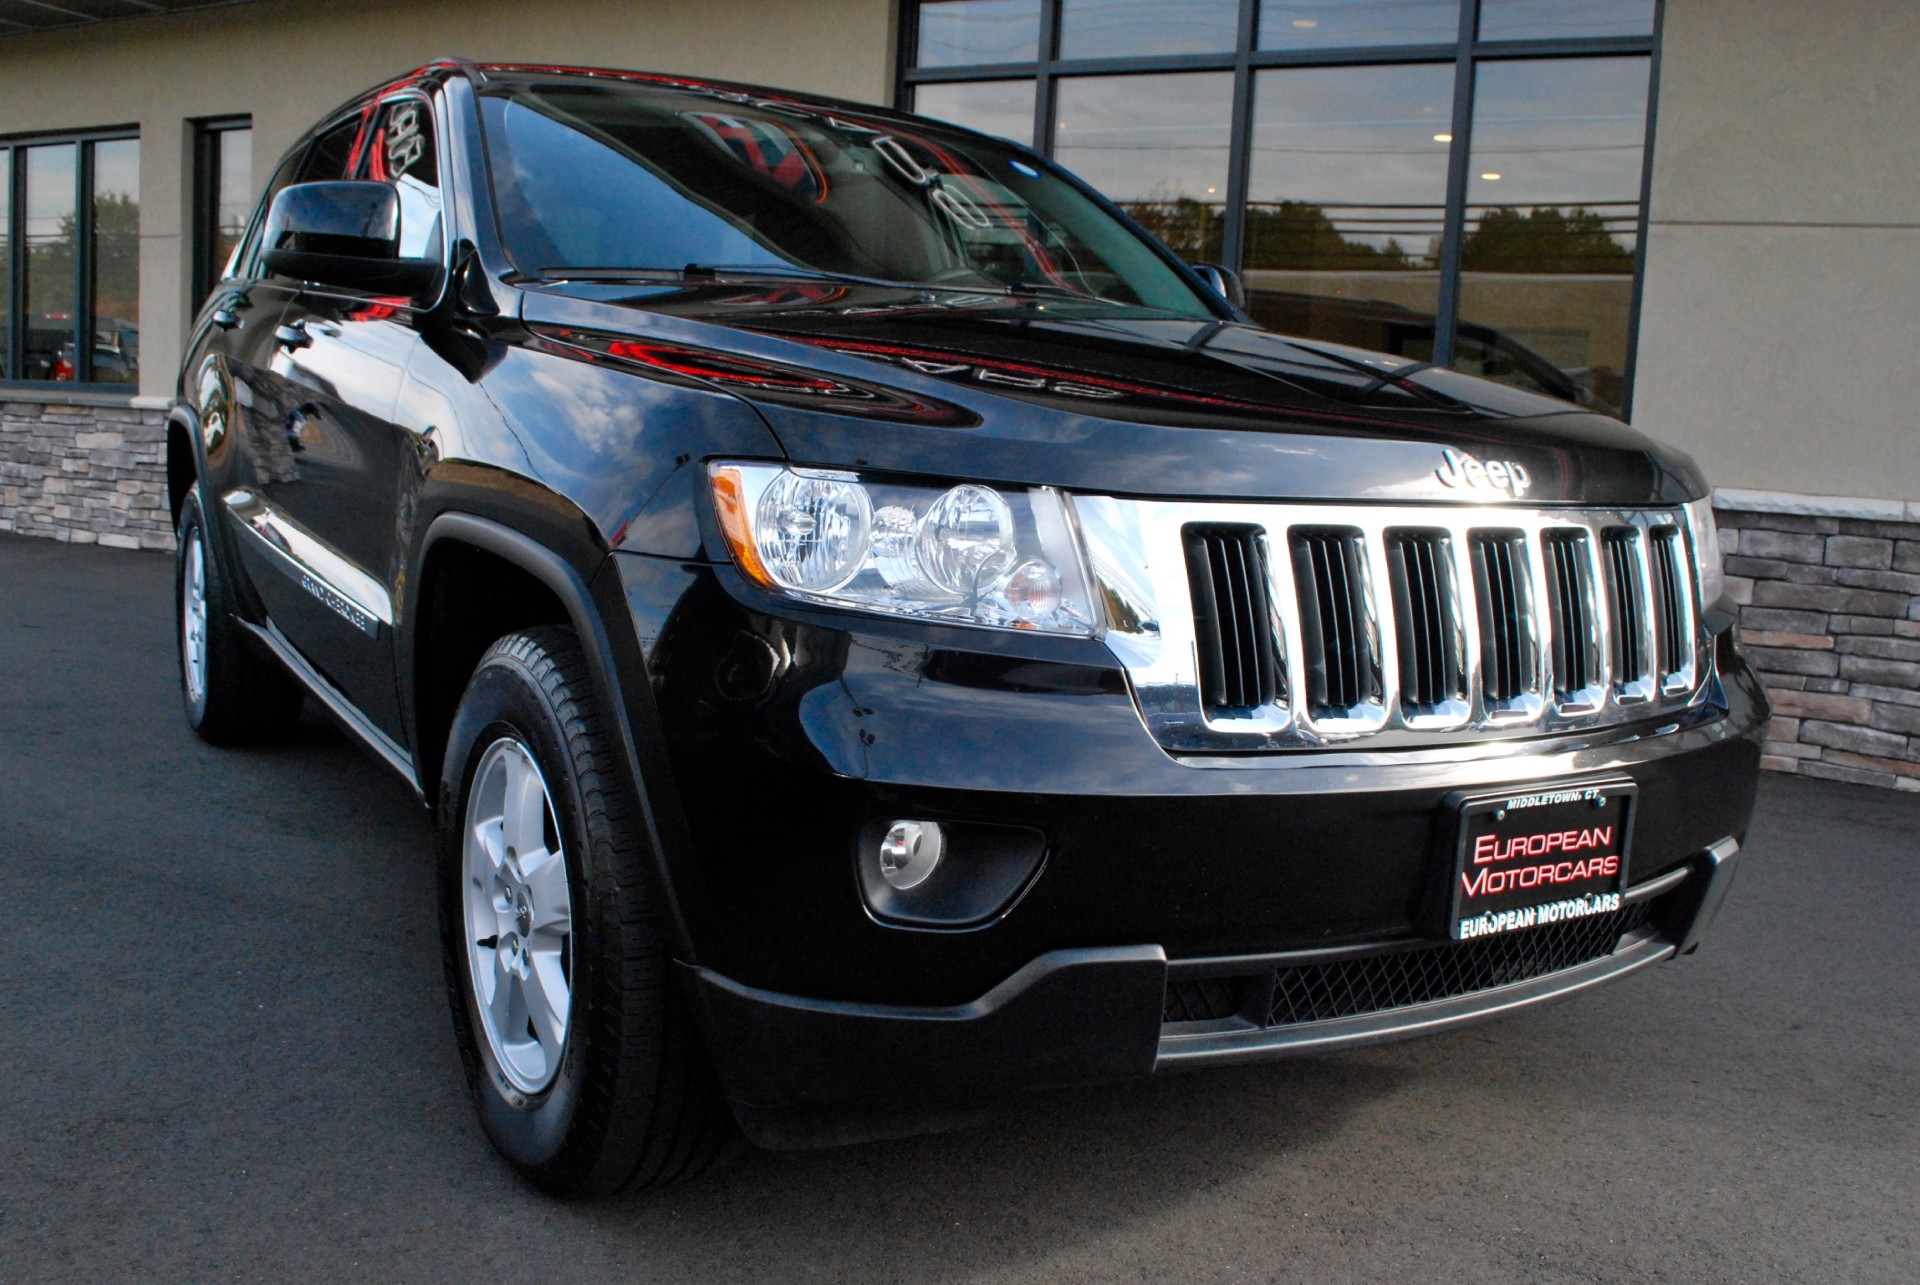 2012 jeep grand cherokee laredo for sale near middletown ct ct jeep dealer stock 165277. Black Bedroom Furniture Sets. Home Design Ideas